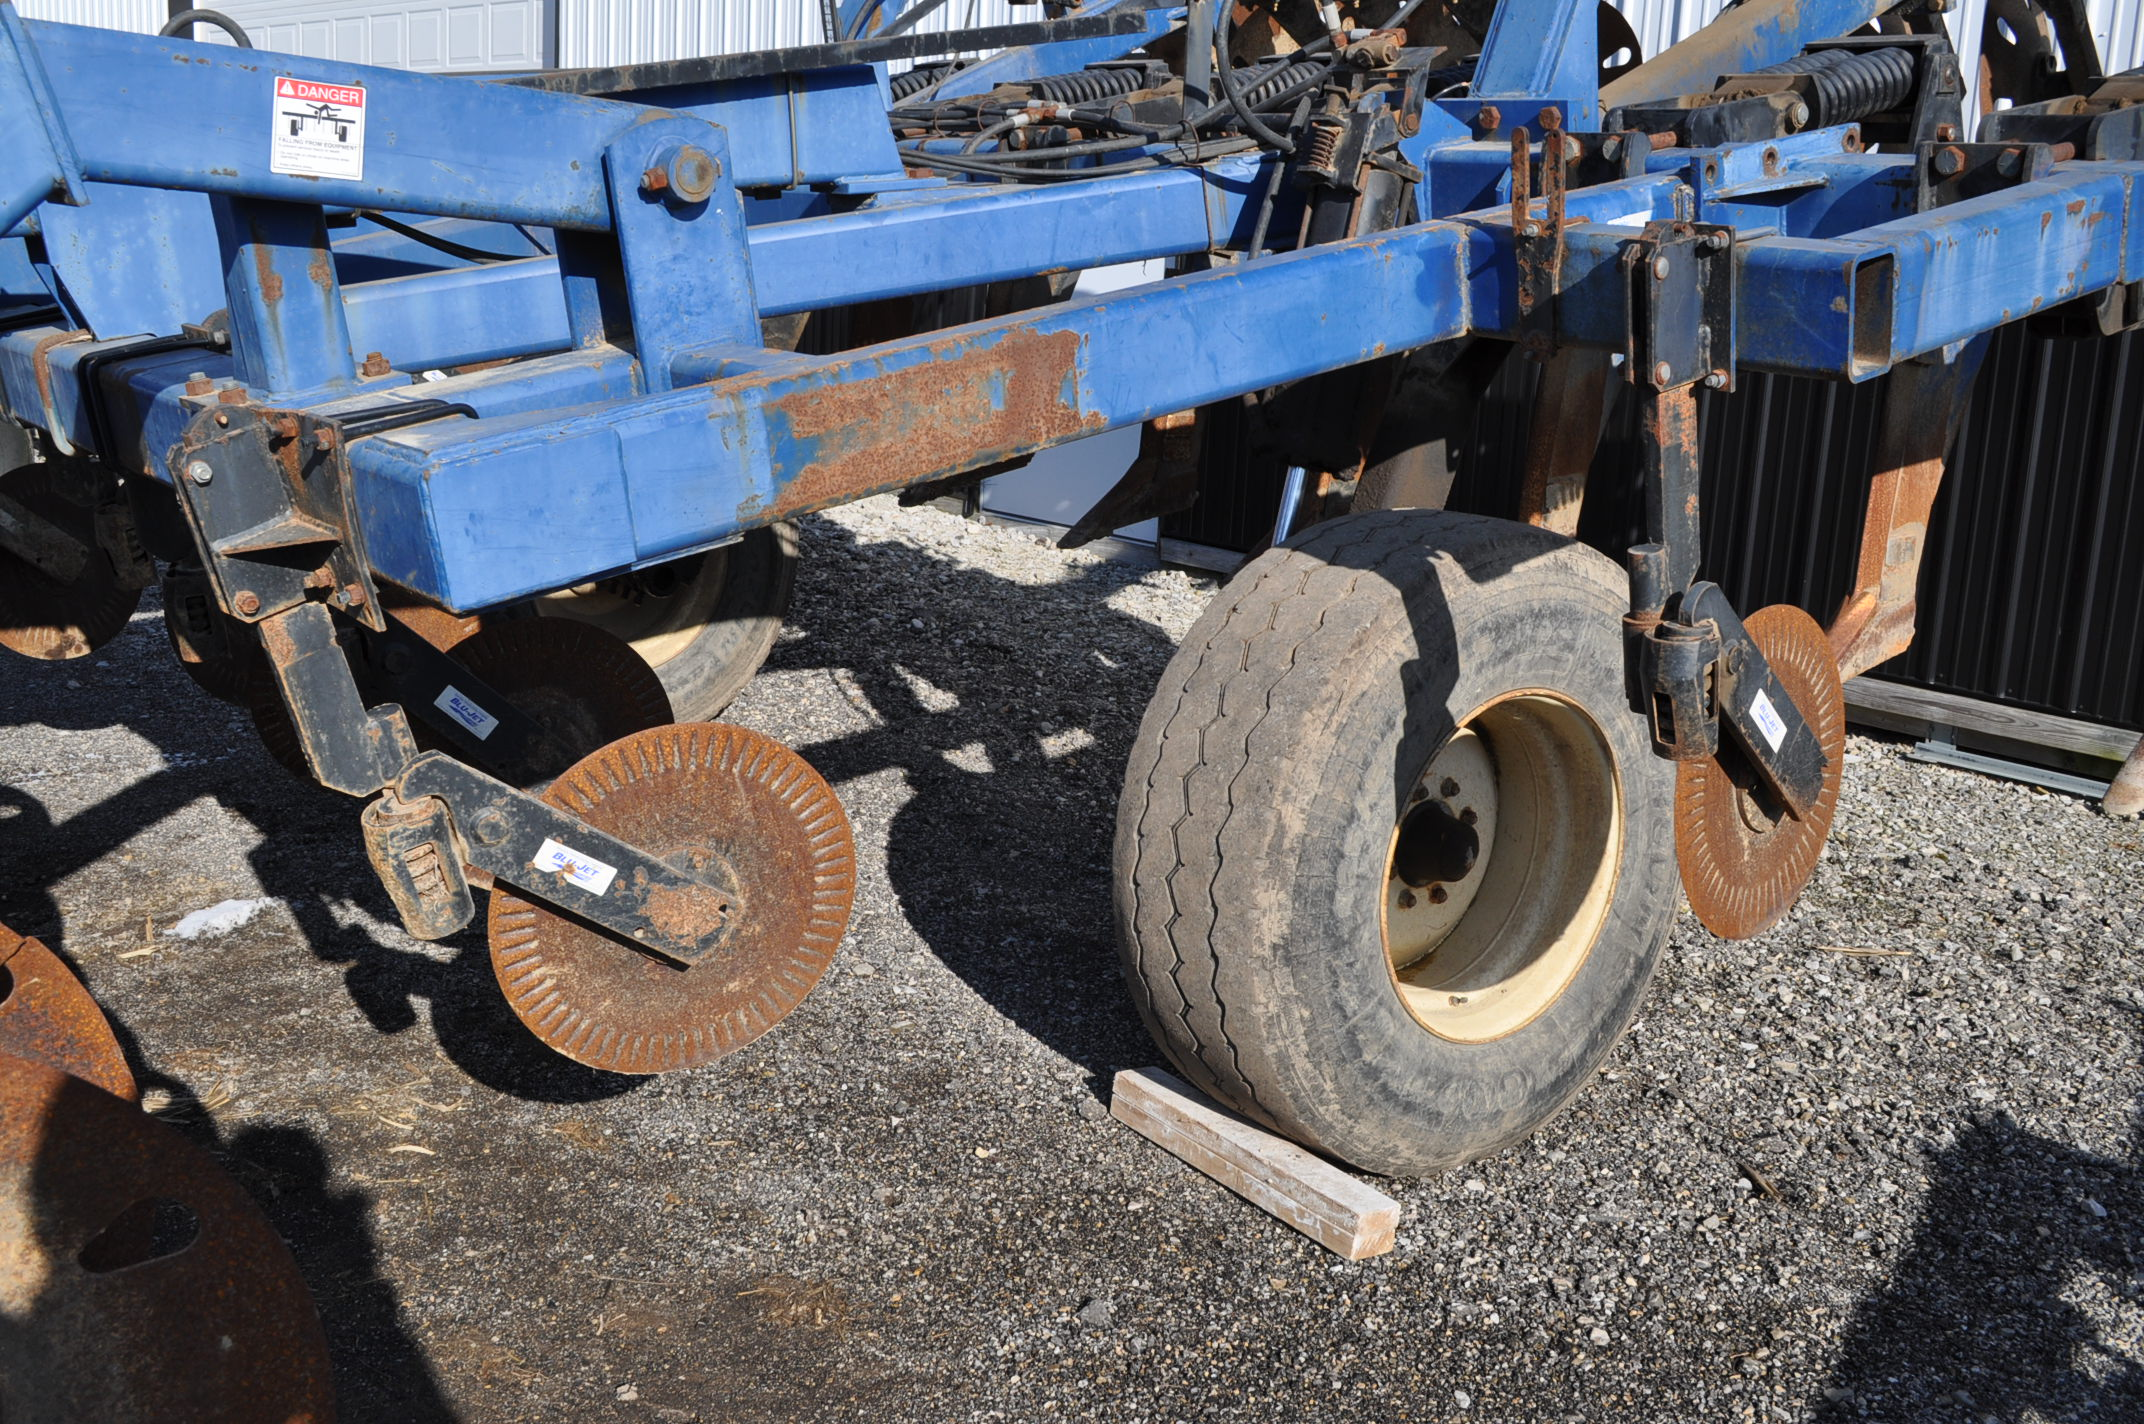 Blu-Jet Tillage Pro 7 shank inline ripper, front and rear hyd adjustable discs, sells with extra - Image 8 of 18